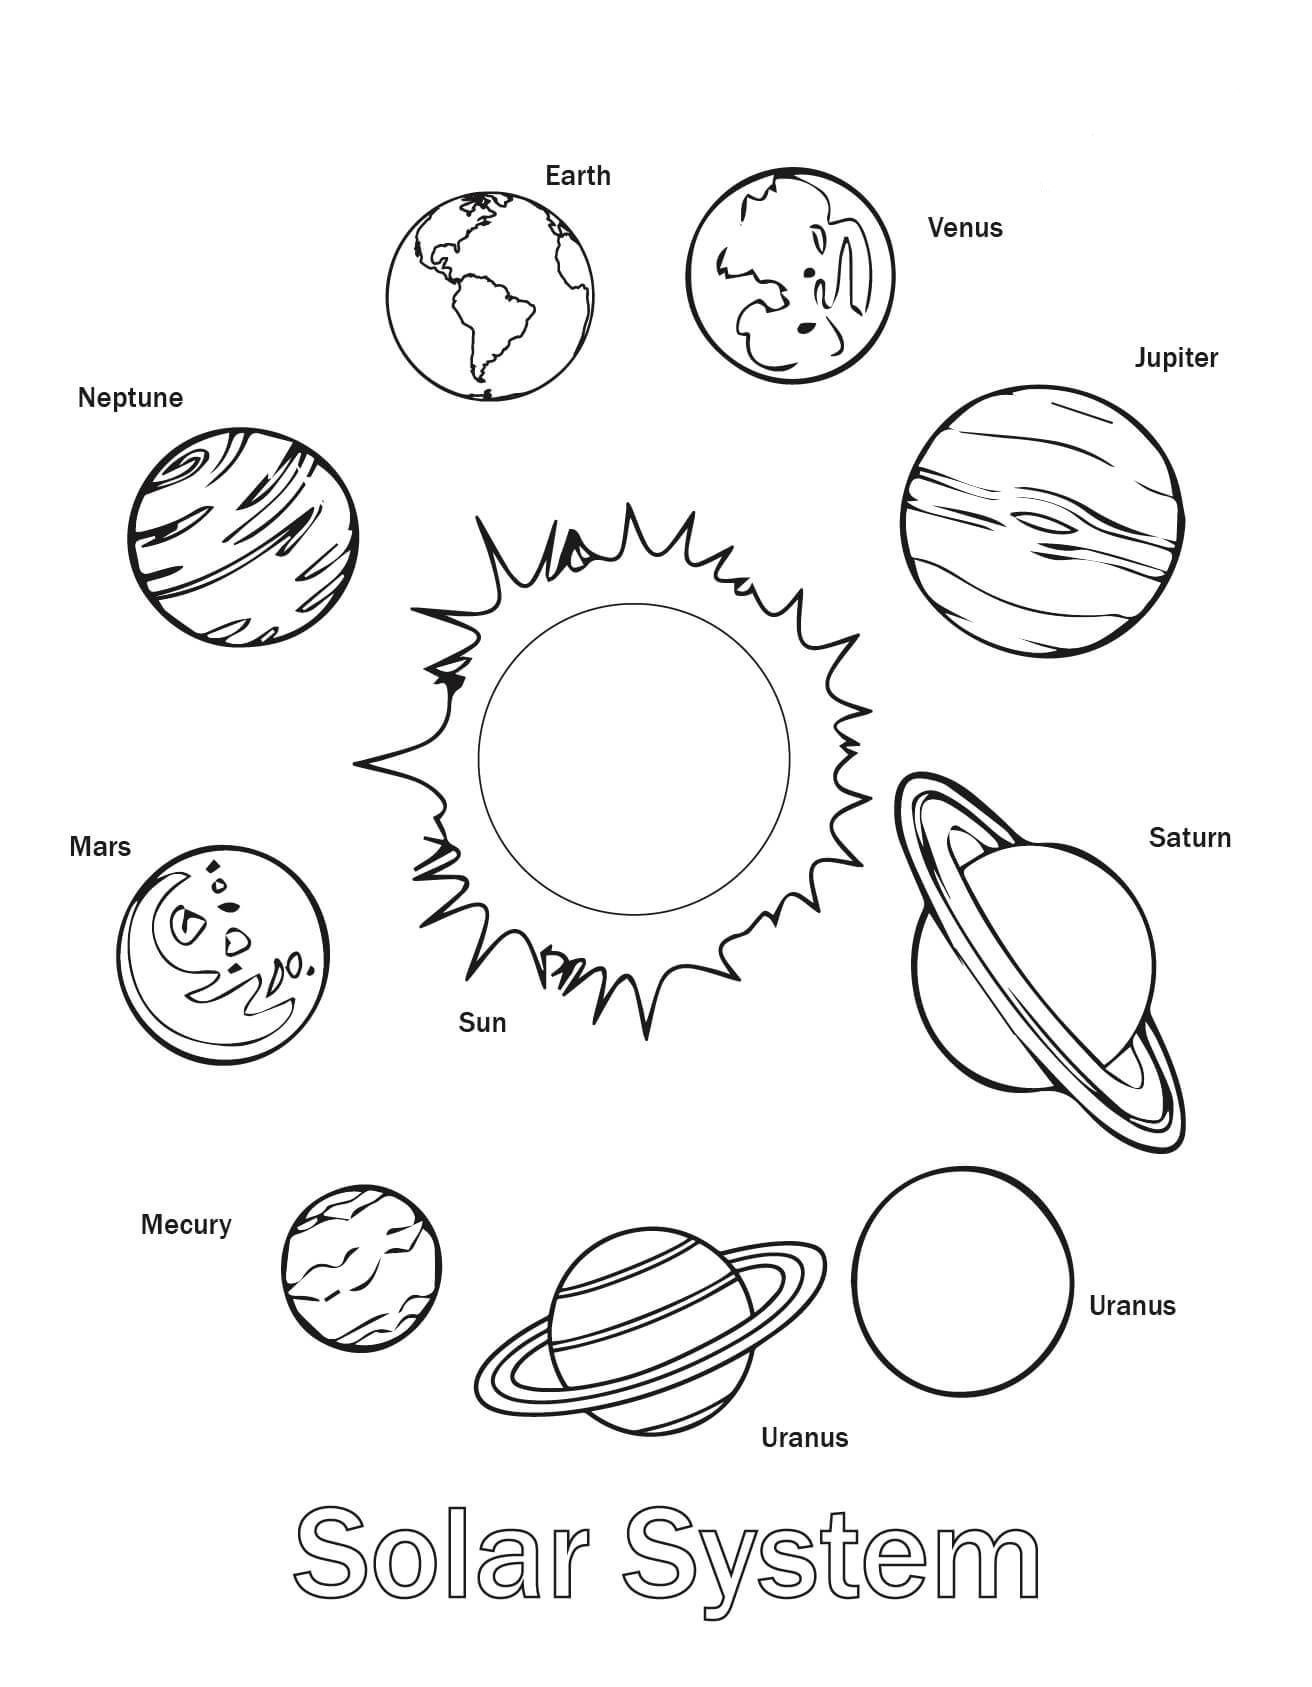 Free Printable Solar System Coloring Pages For Kids - Free Printable Solar System Worksheets